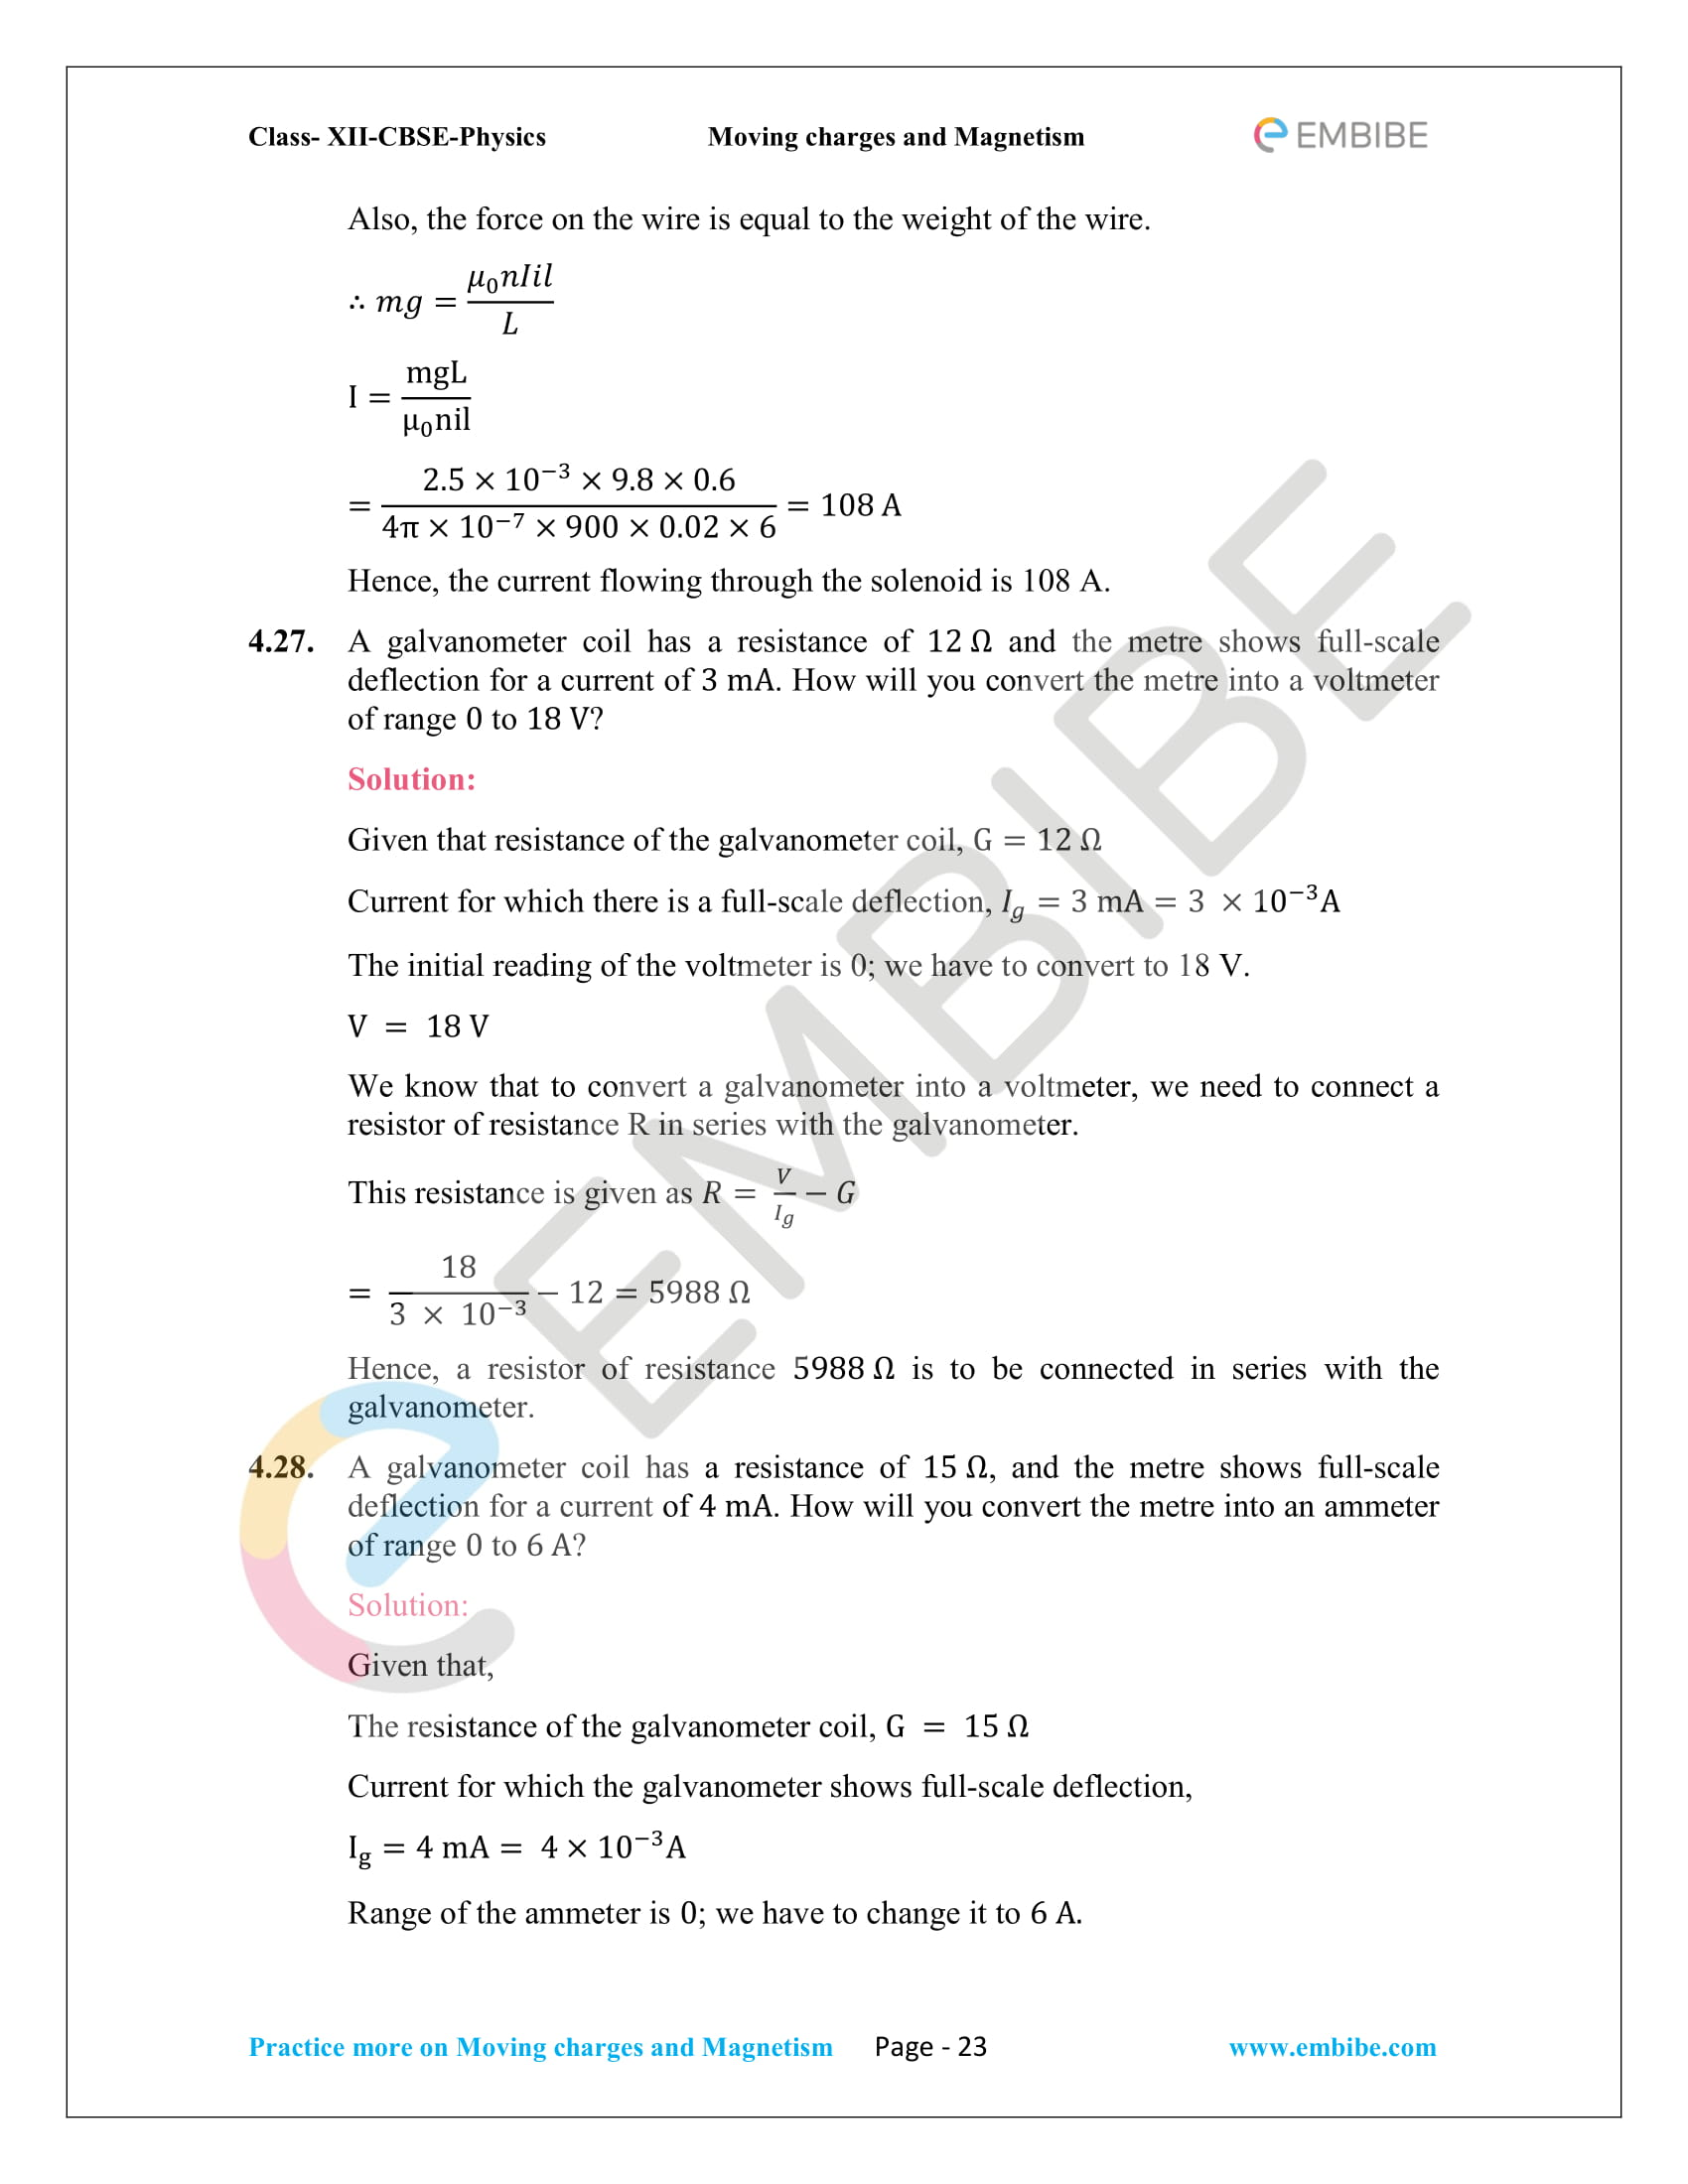 NCERT_Grade 12_Physics_Ch_04_Moving Charges and Magnetism-23